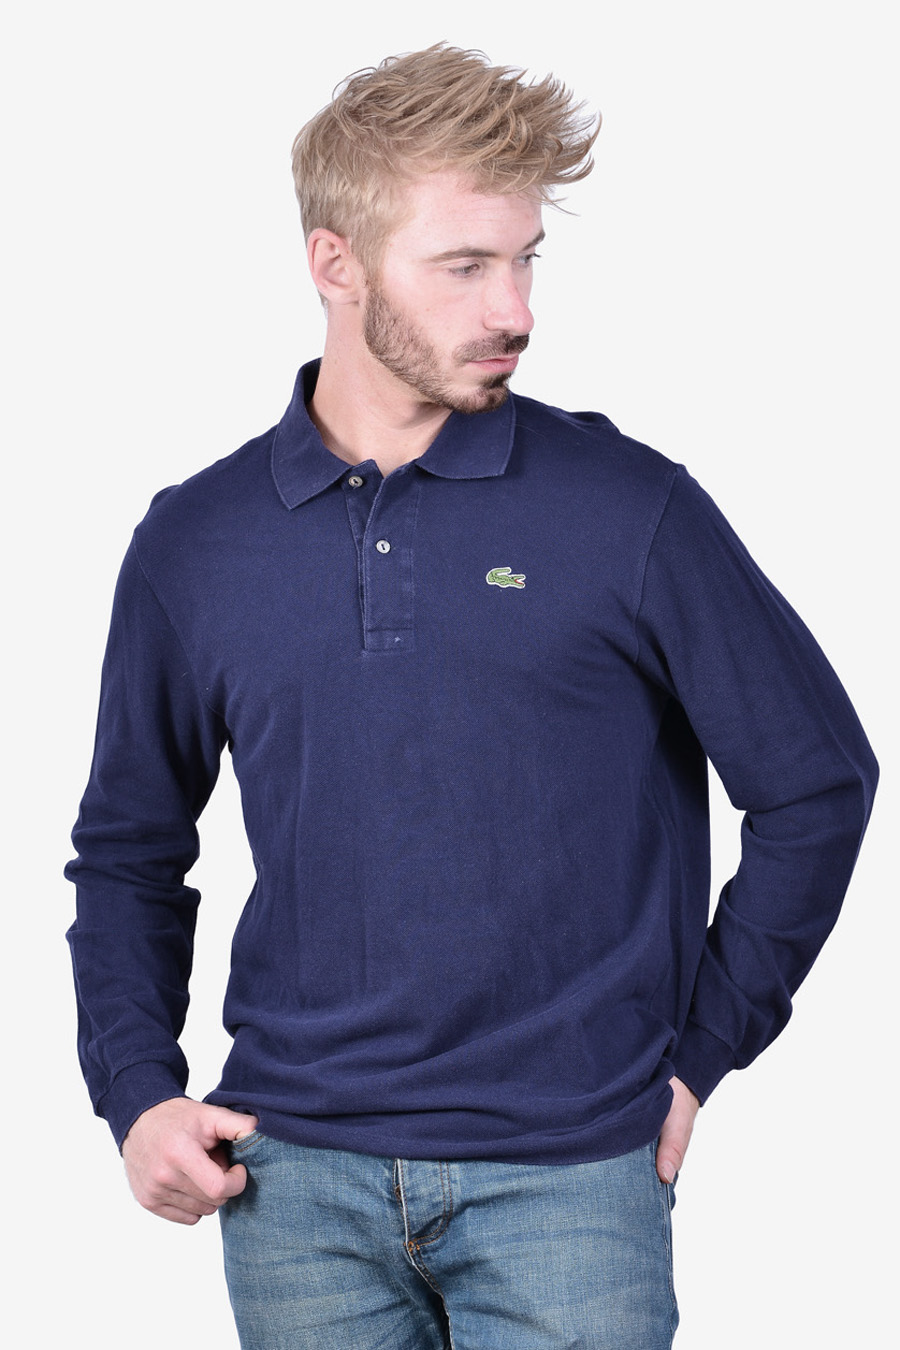 Vintage Lacoste long sleeved polo shirt